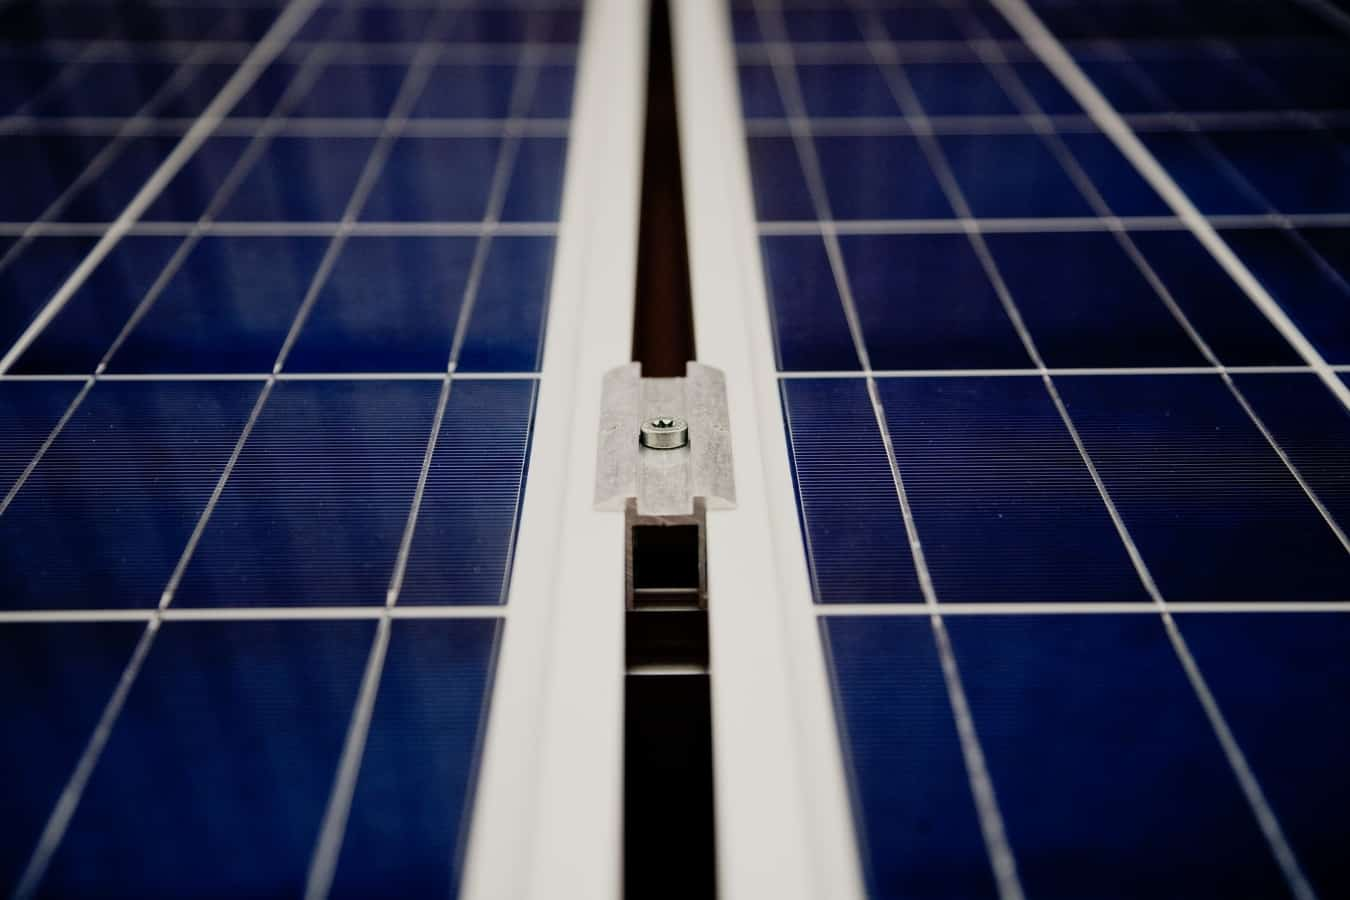 A closeup of dark blue solar panels and a white mounting component between the grids.